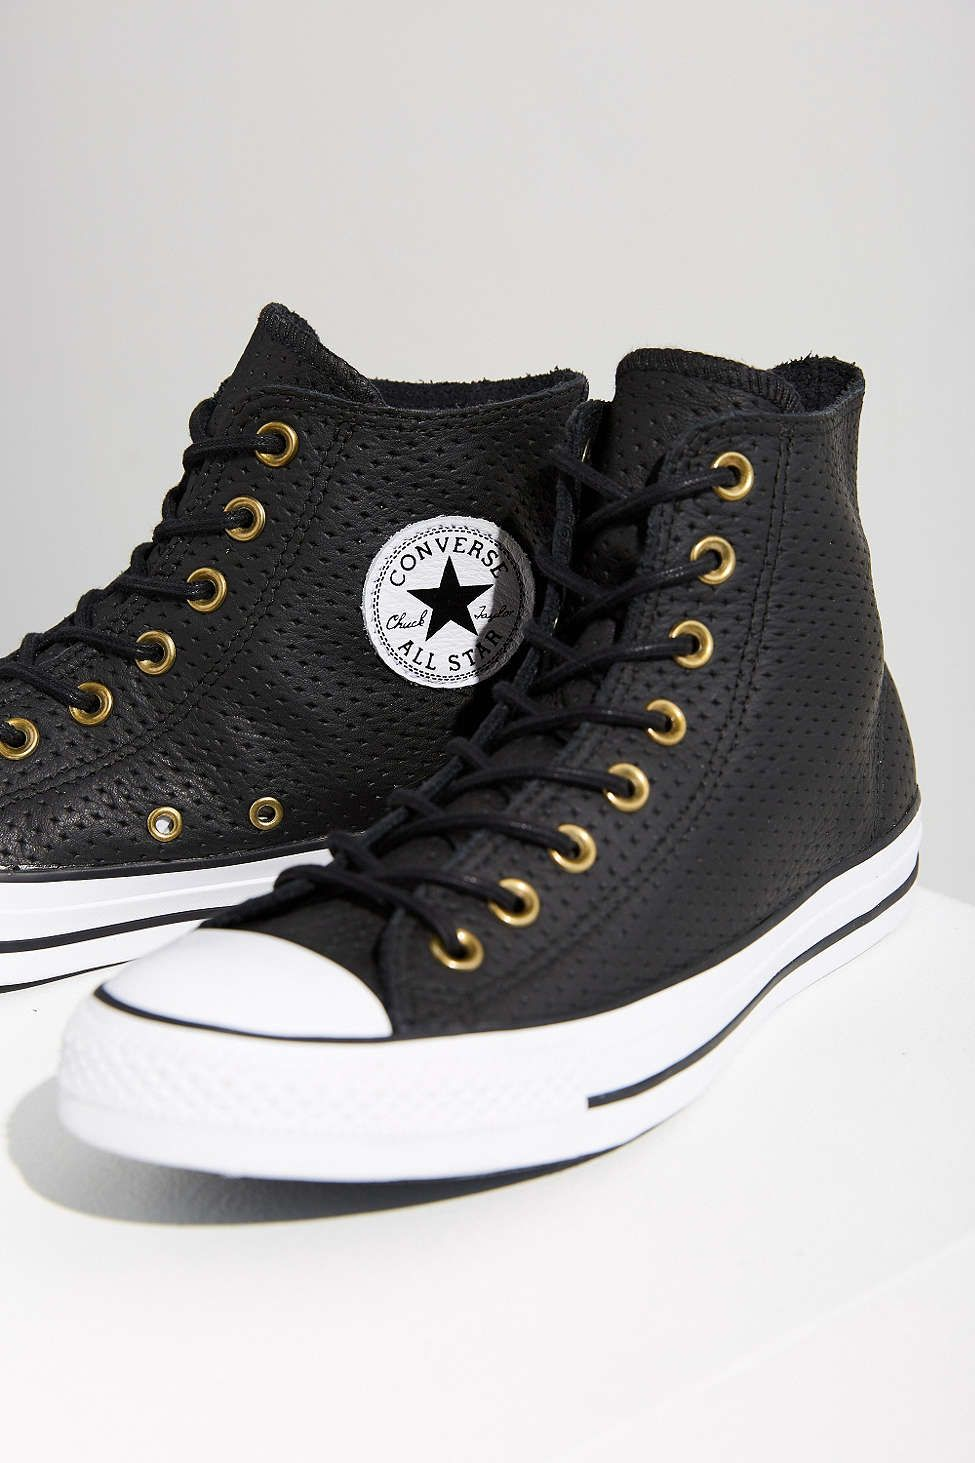 61964332cc4 Converse Chuck Taylor Perforated Leather Sneaker http   www.95gallery.com